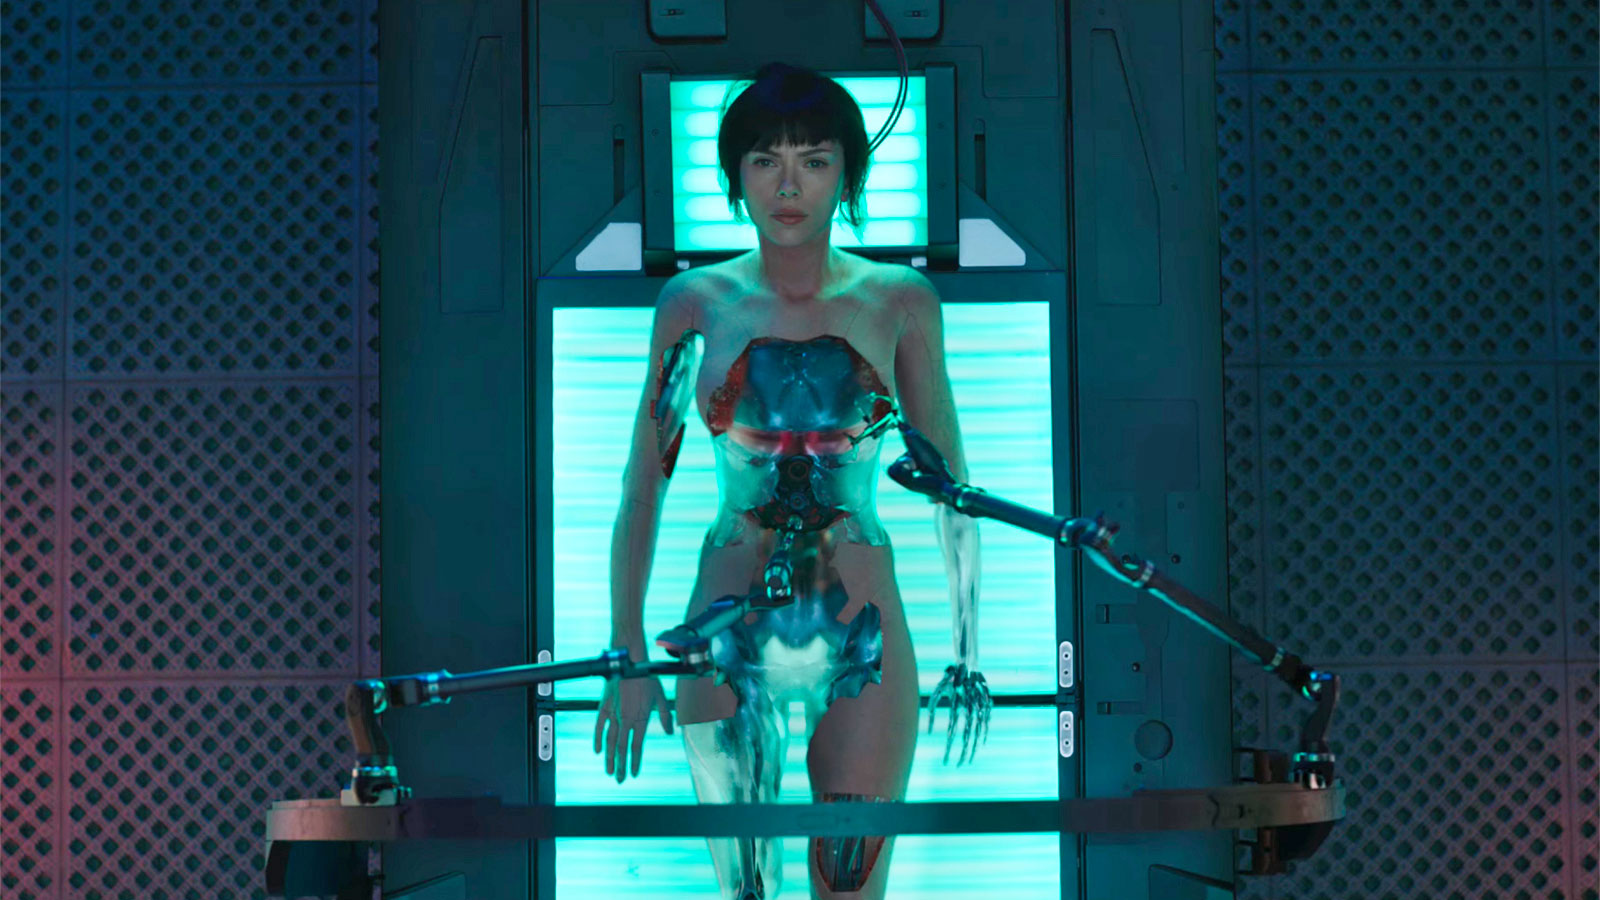 Ghost In The Shell Remake Is Visually Stunning But Dumbed Down Kpbs